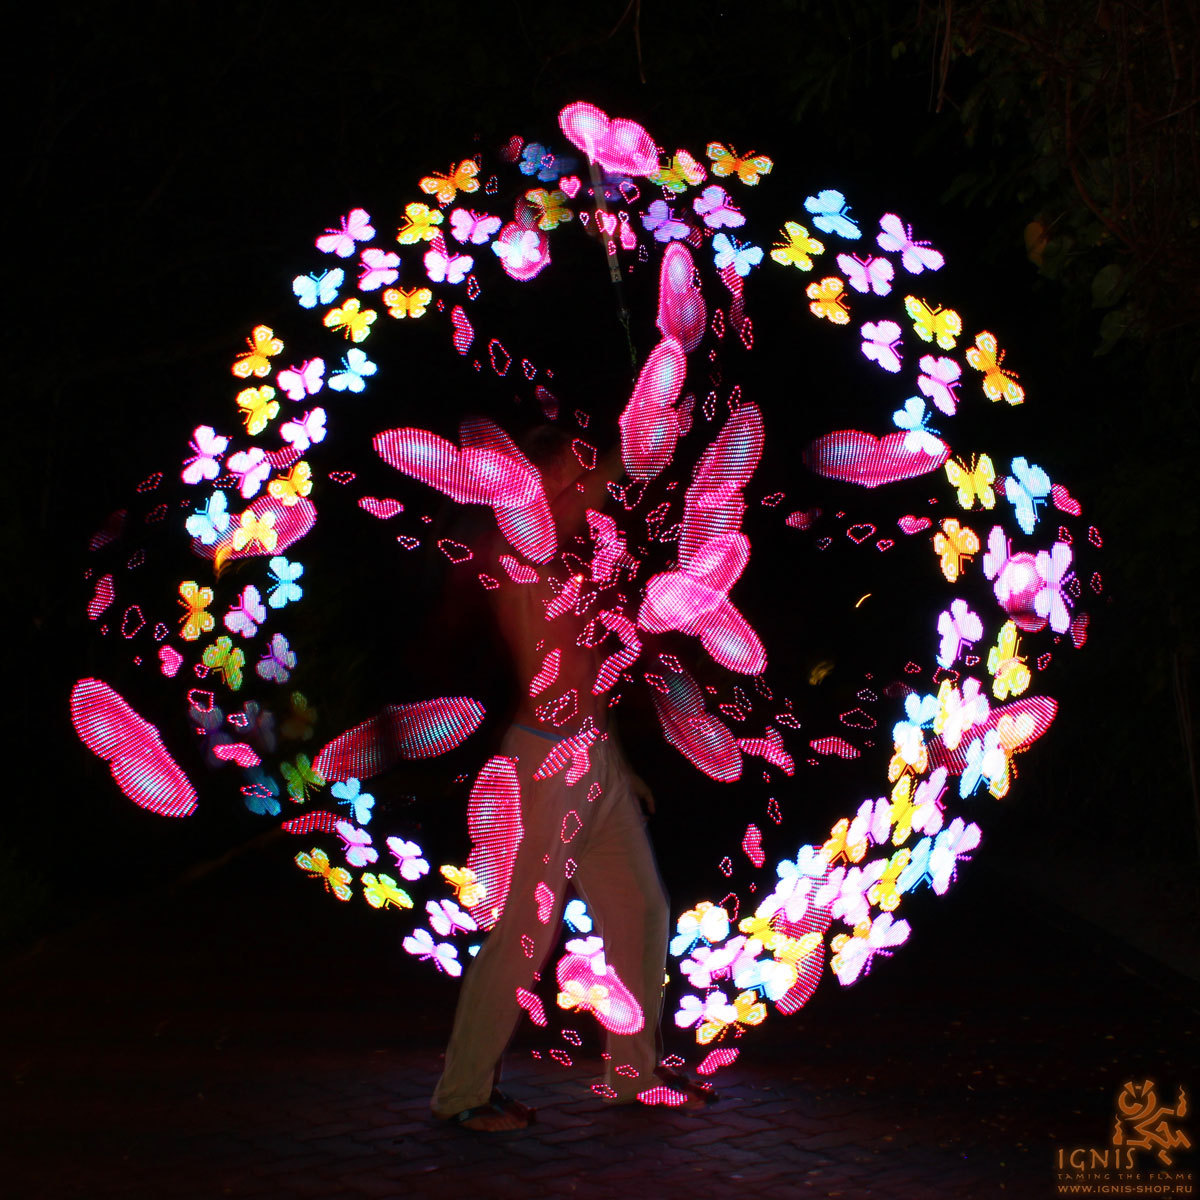 LED digital poi Ignis Pixel 80 Long